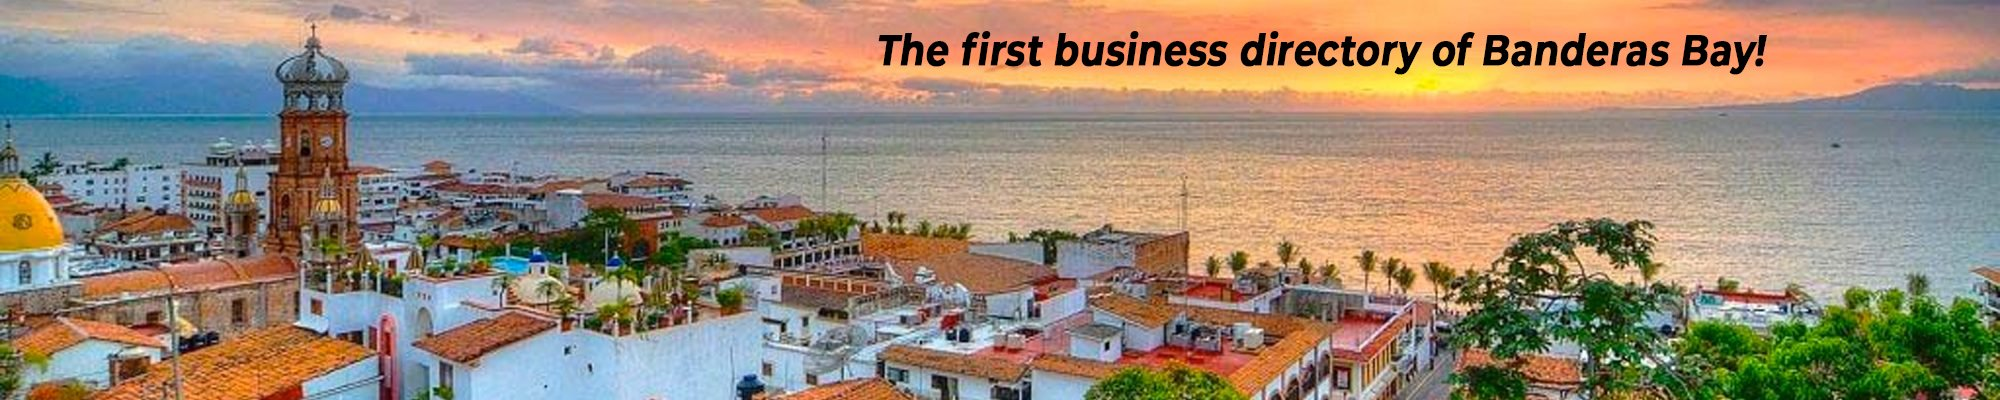 Best-of-Banderas-Bay-Business-Directory